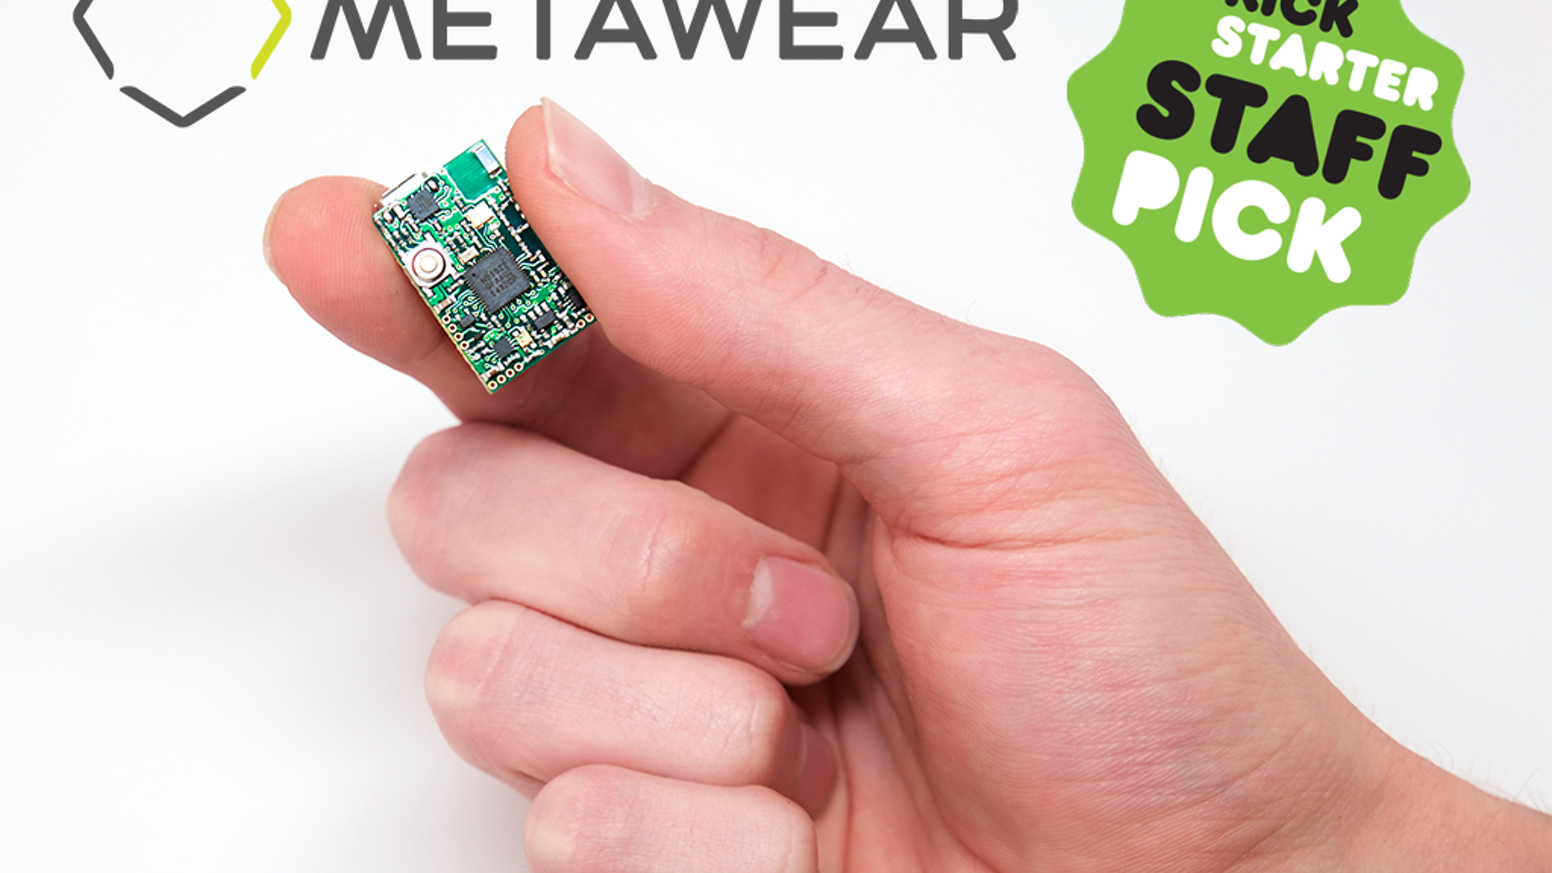 Build your product with this Tiny Wireless Low-Power Bluetooth Sensor Platform that you program and control with your Smartphone.